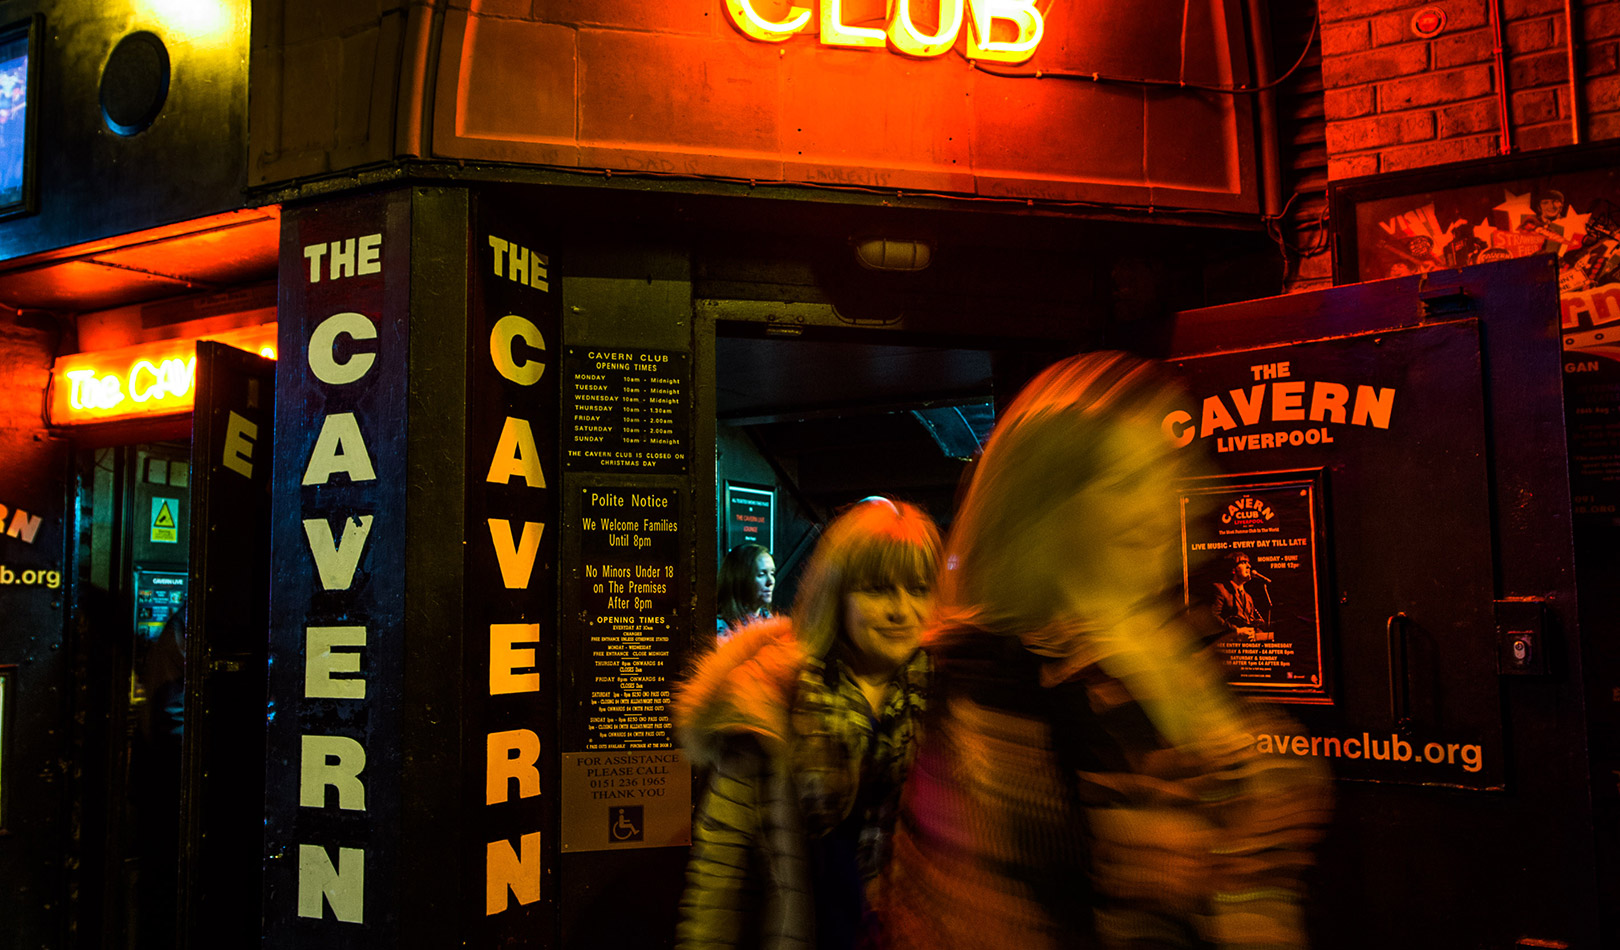 Neo sign and people exiting the Cavern Club in Liverpool.